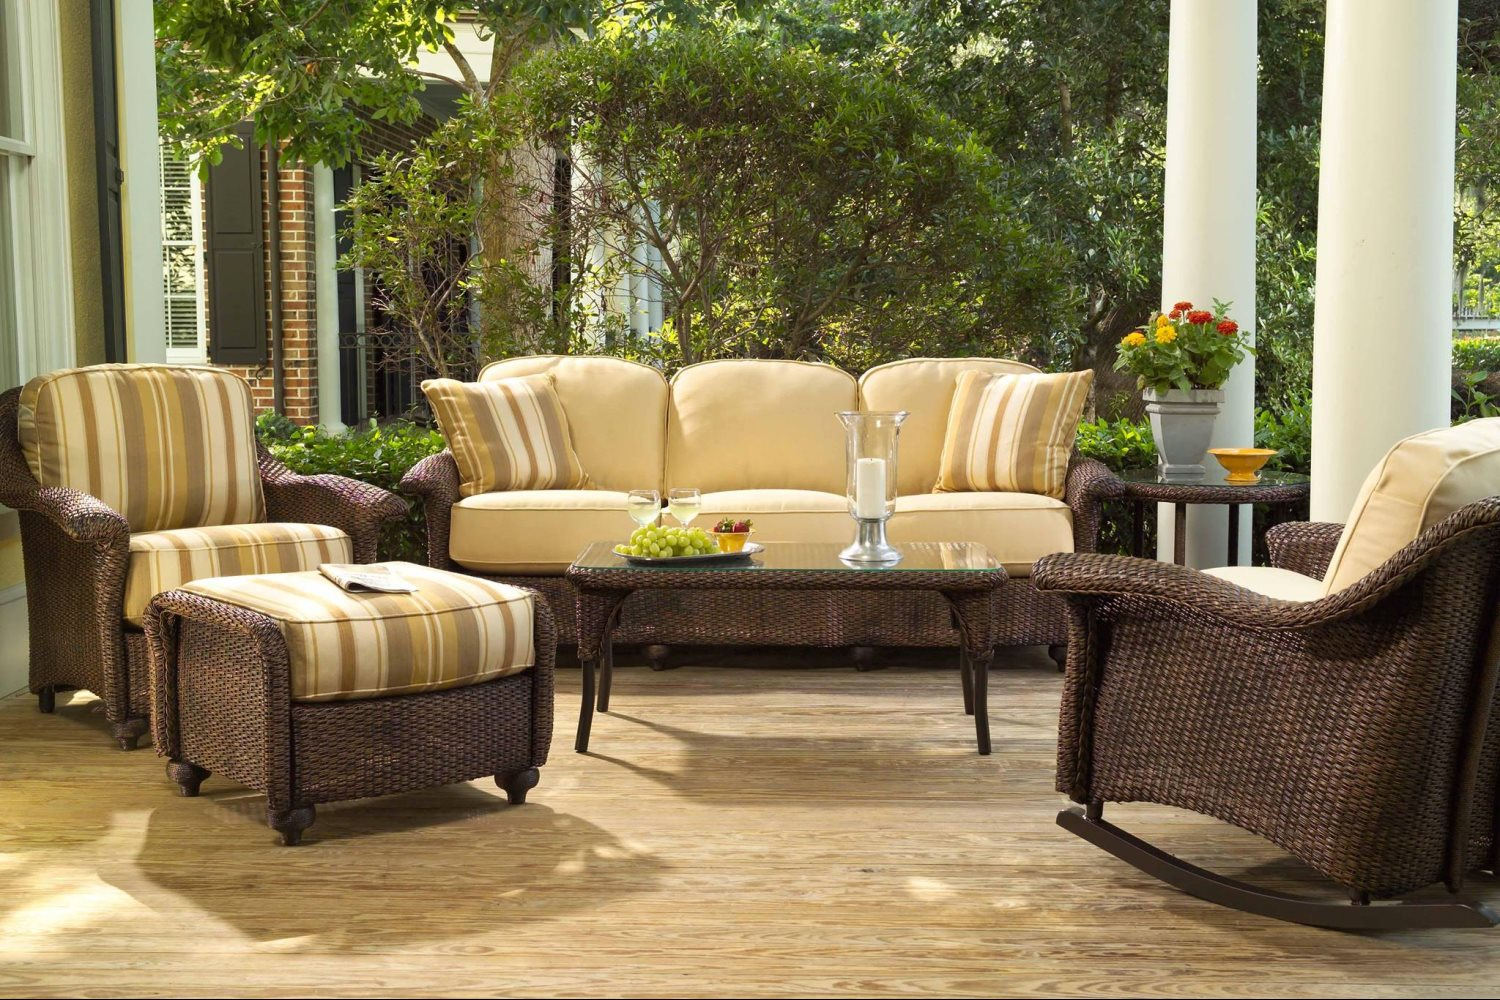 Patio Furniture Outdoor Seating & Dining Patio Furniture Outdoor Dining